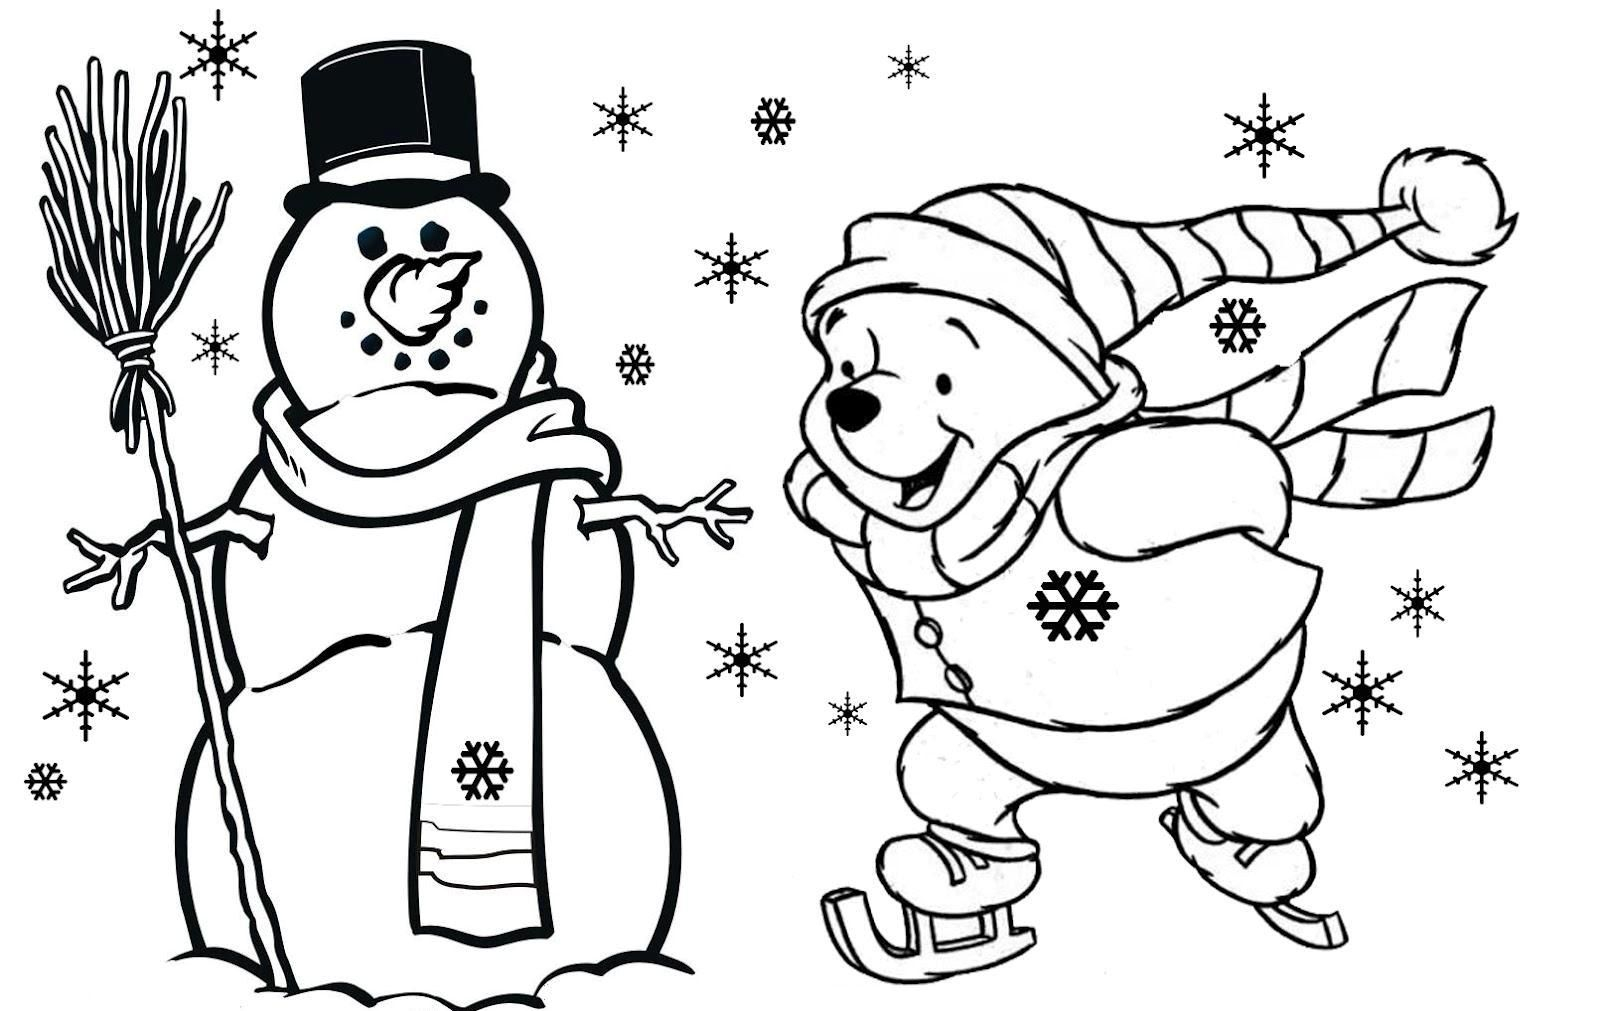 Christmas Color Pages For Kids Coloring Pages Childrens Christmas Coloring Pages Free Printable